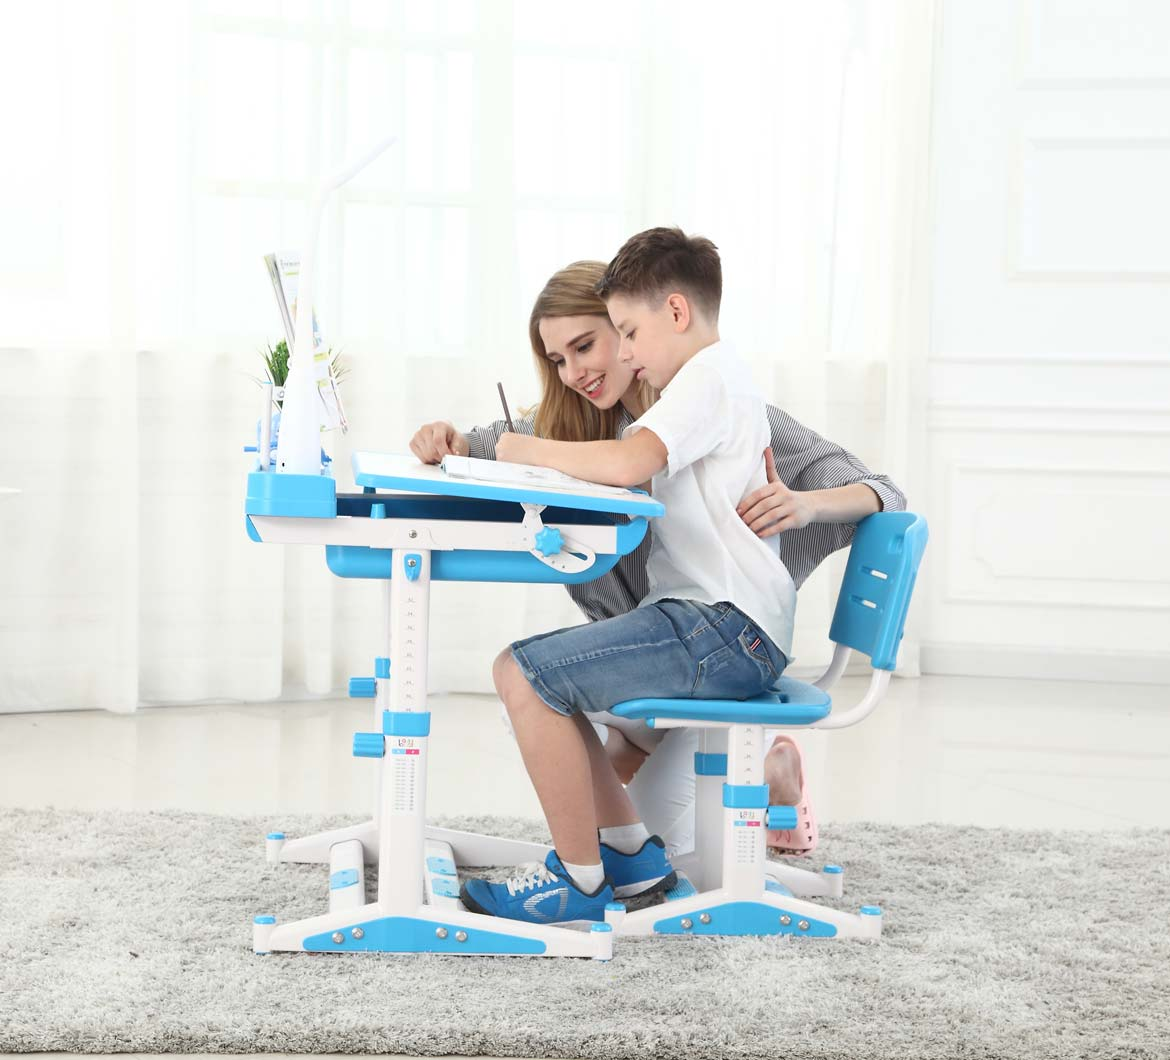 ergonomic-kids-desk-chair-study-table-blue-desk-for-boys-portfolio-sprite-blue-desk-1